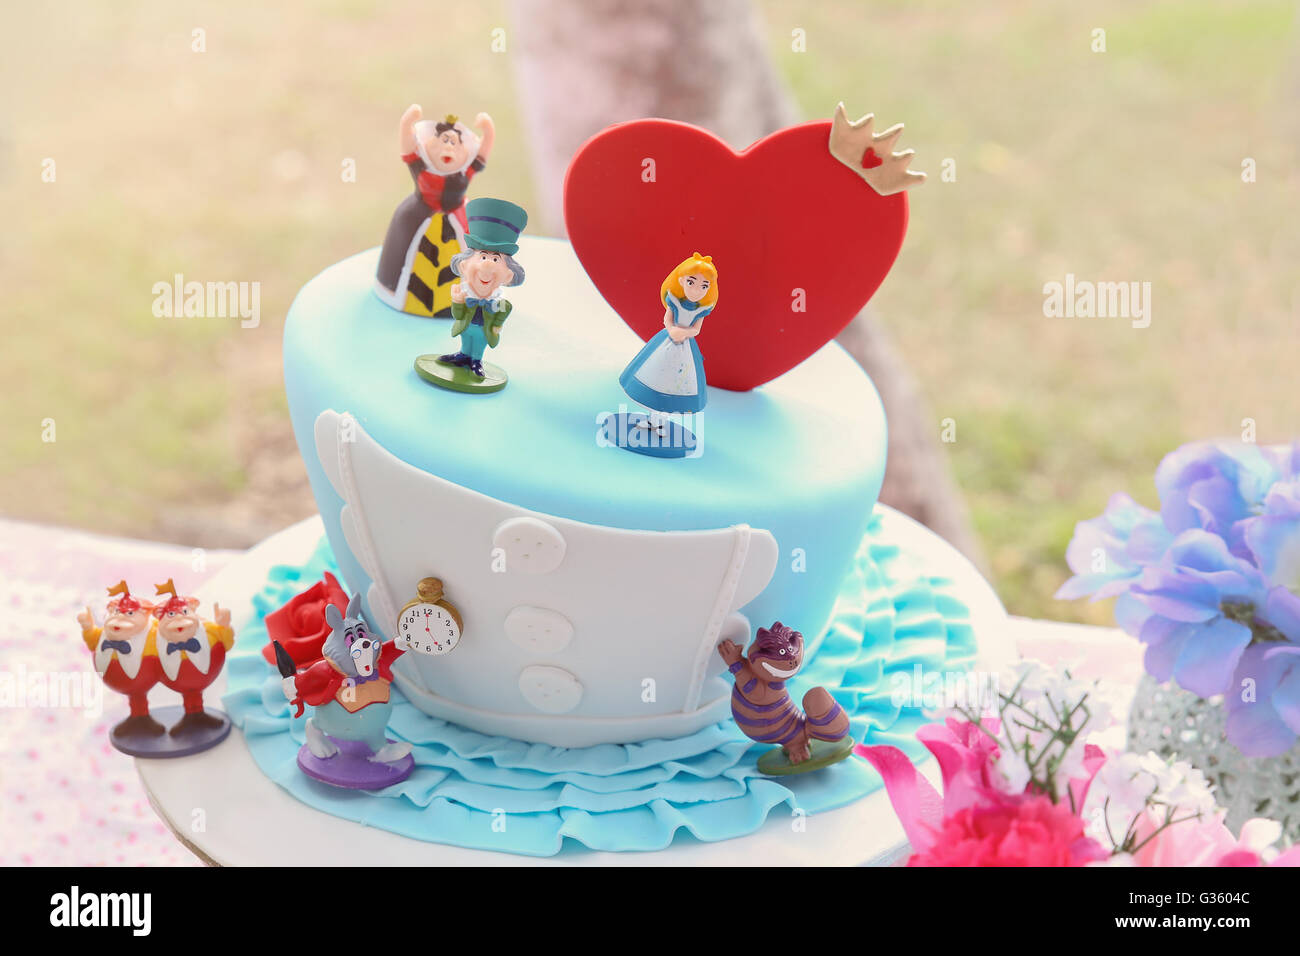 Mad Hatters Cake Alice In Wonderland Tea Party Toning Stock Photo